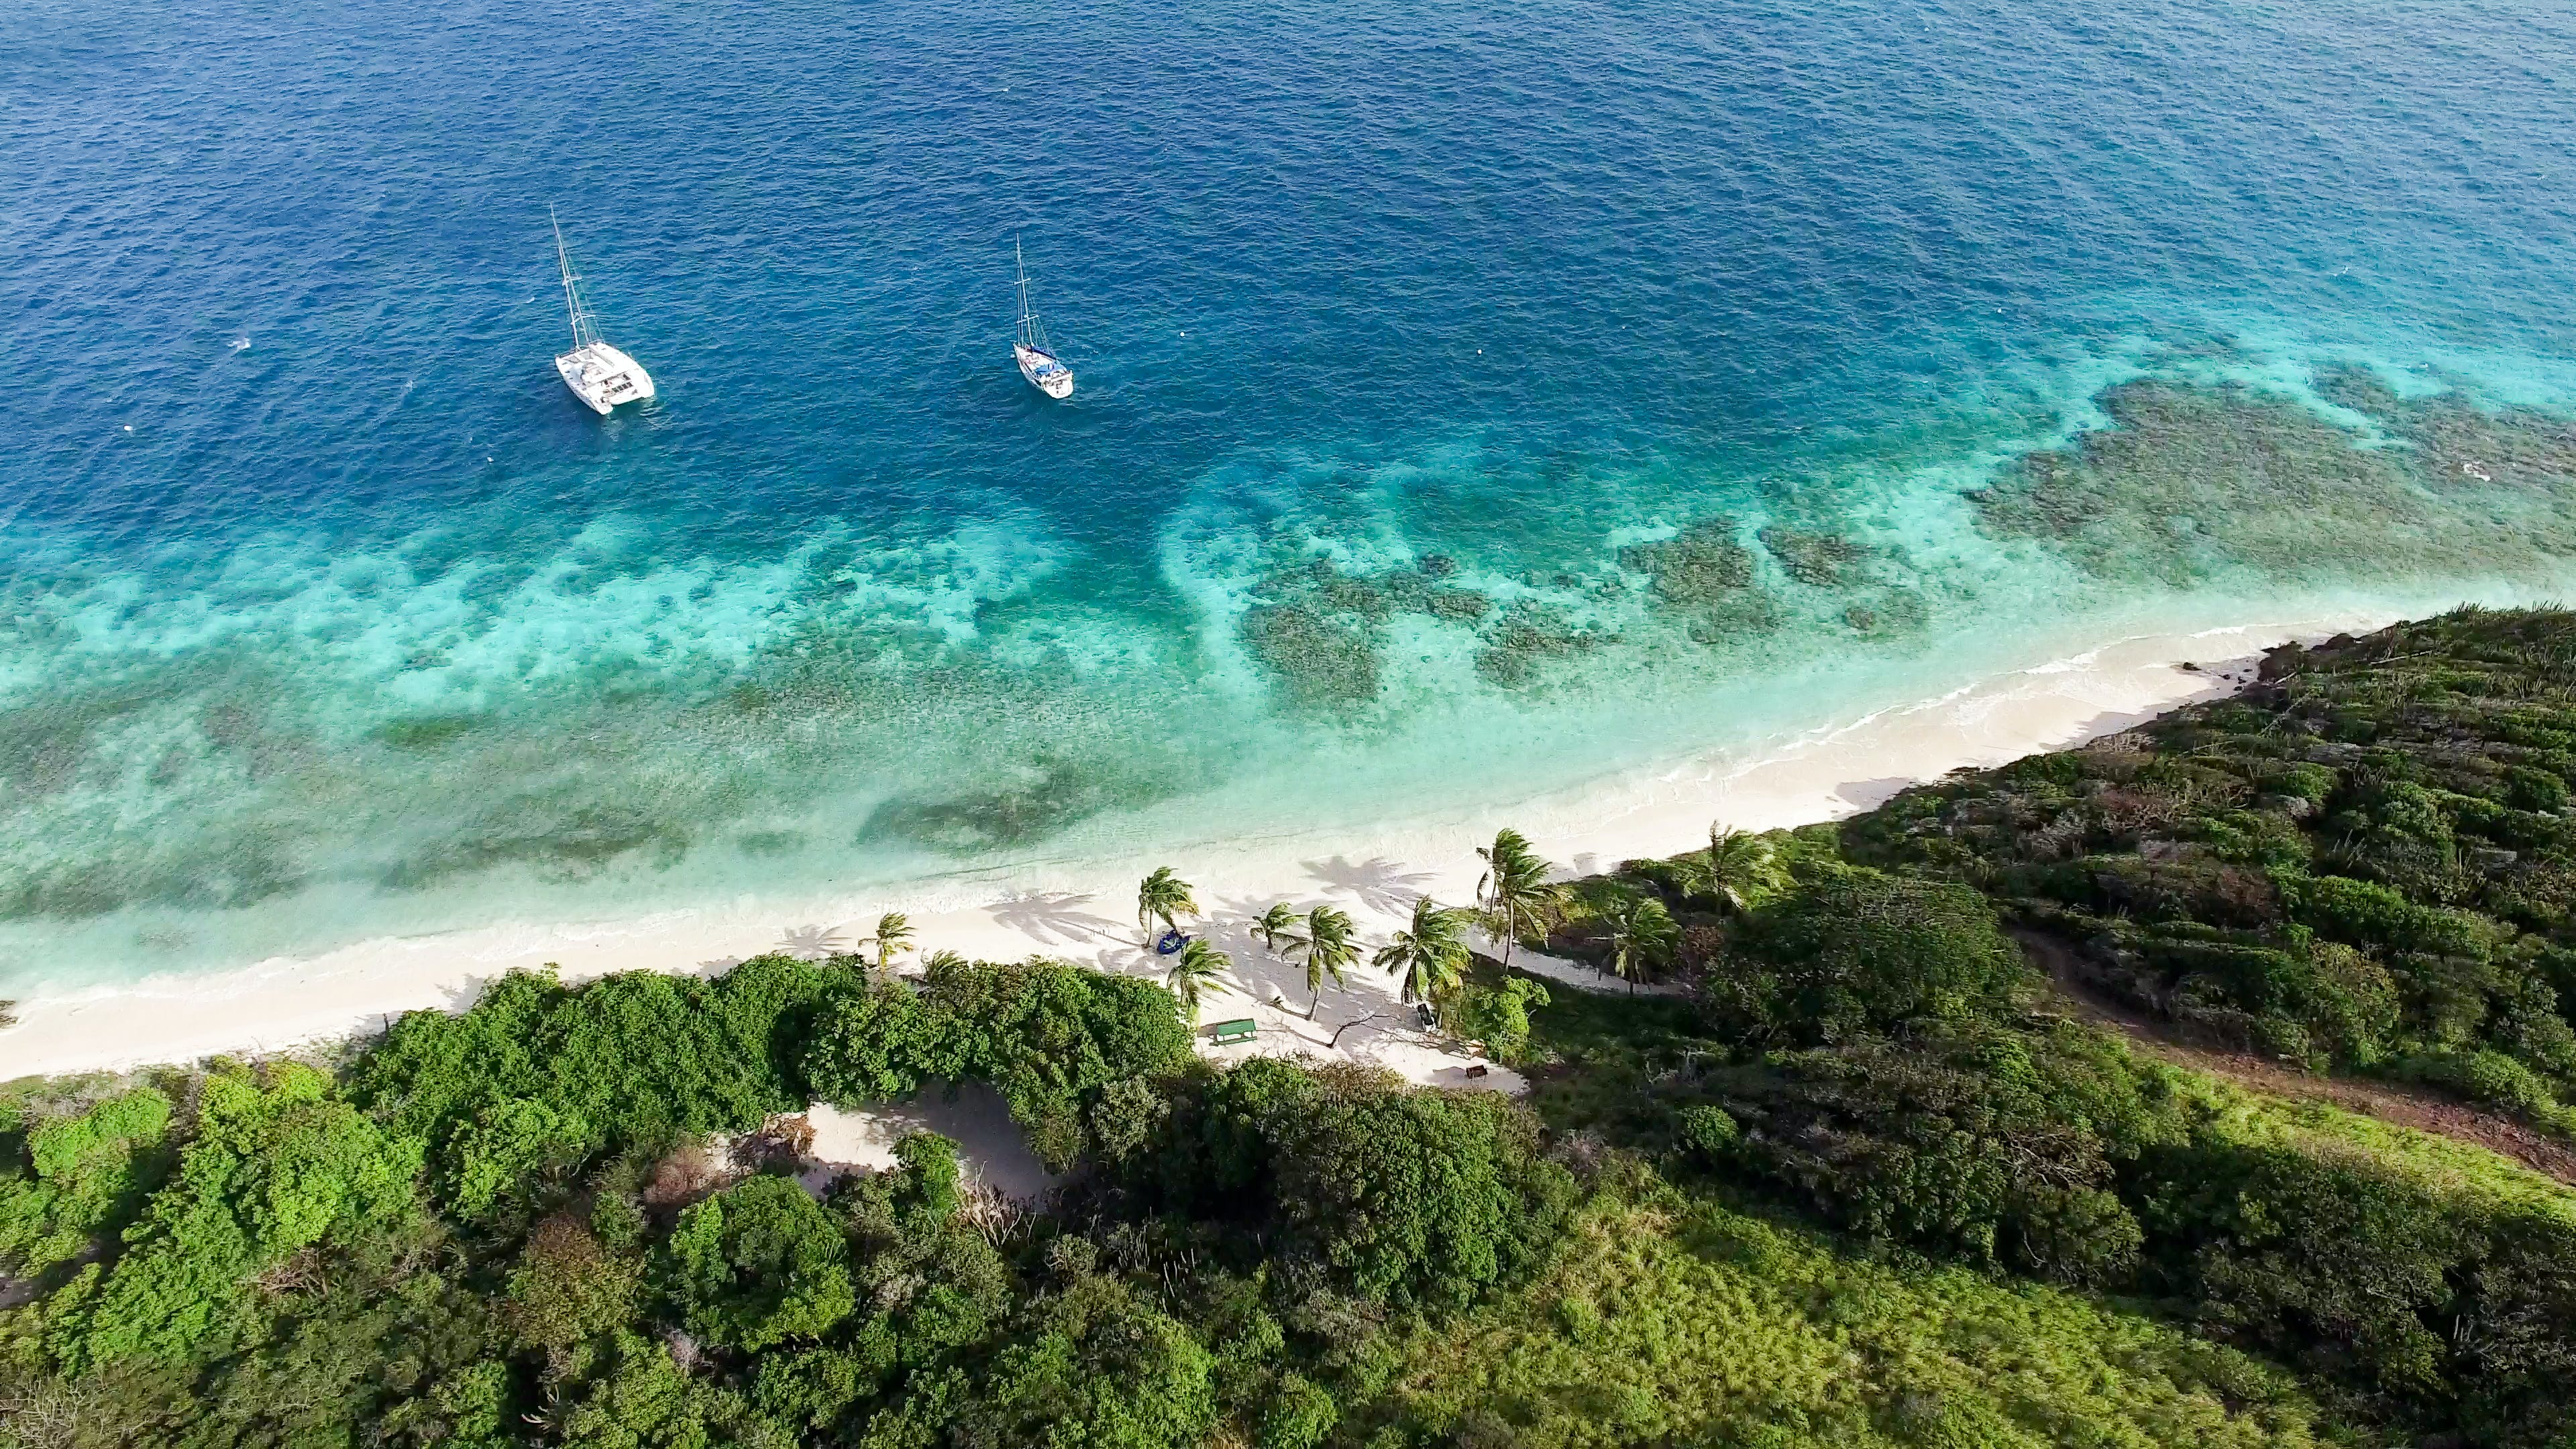 Sun, sand, and sea await in the unspoiled islands of the Grenadines.